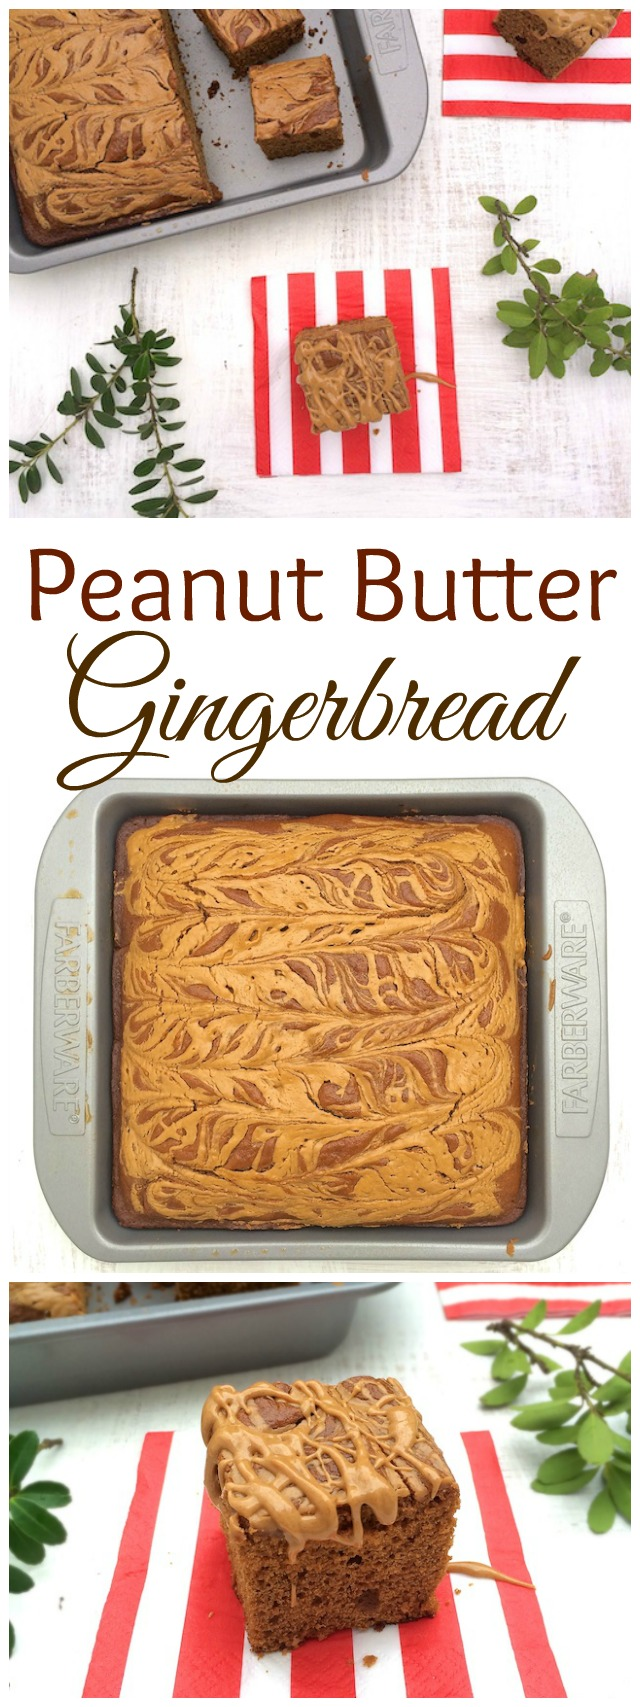 Swirls of peanut butter on top of gingerbread for the holidays! @tspbasil